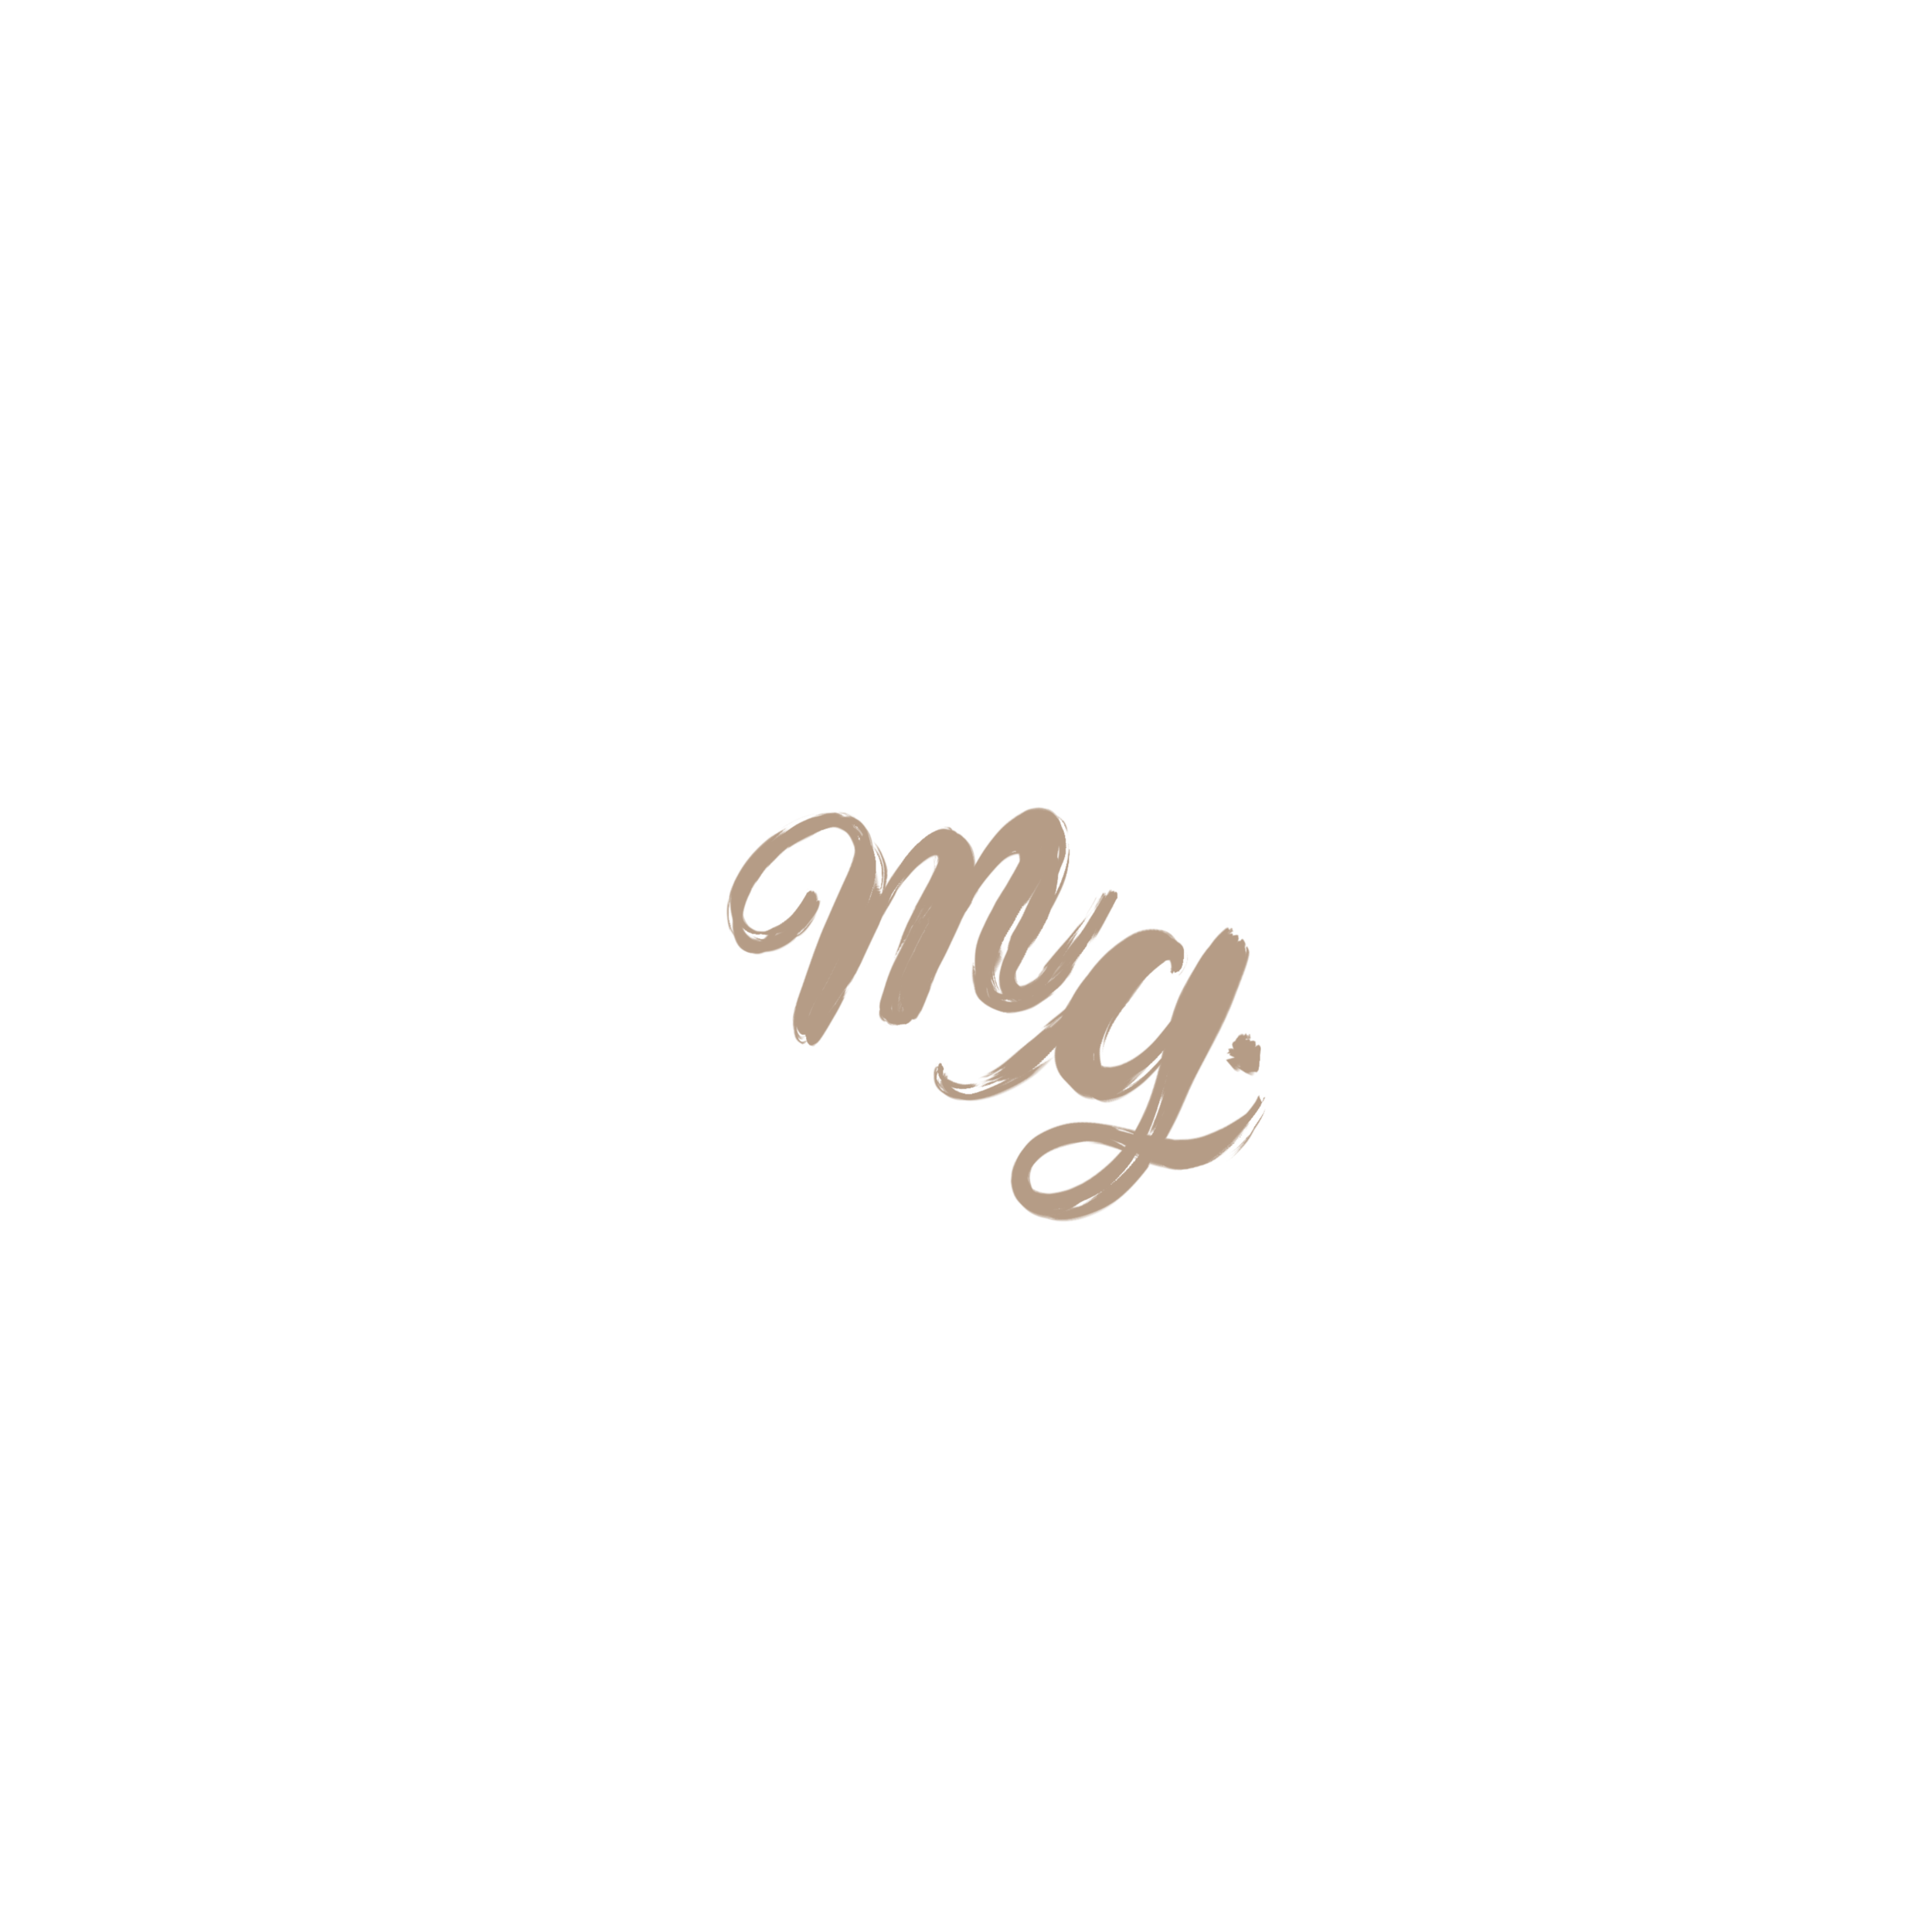 michelle gonzalez photography logo icon.PNG